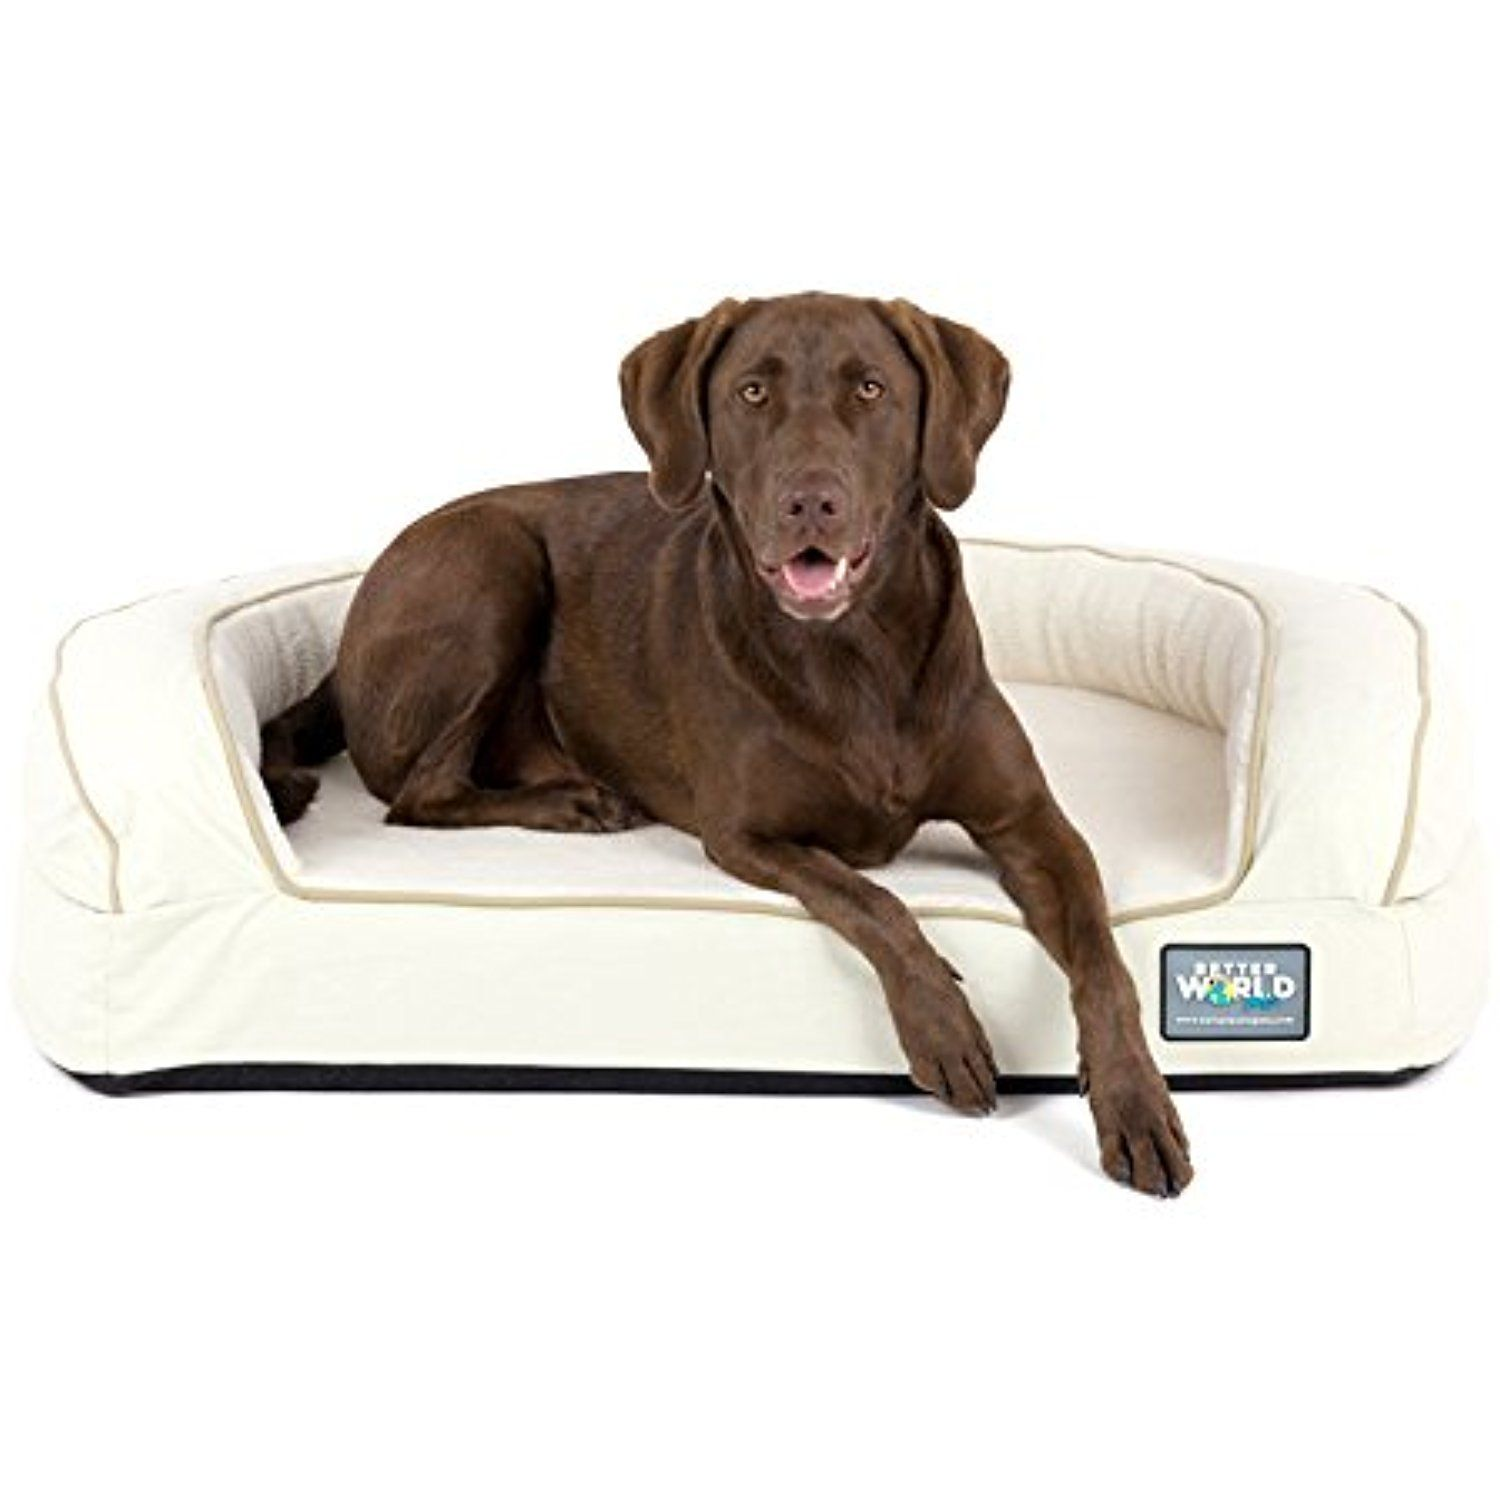 Super Comfort Bolster Dog Bed Waterproof Memory Foam Pet Bed With Durable Canvas Cover Extra Plush Fleece Foa Memory Foam Pet Bed Bolster Dog Bed Dog Bed